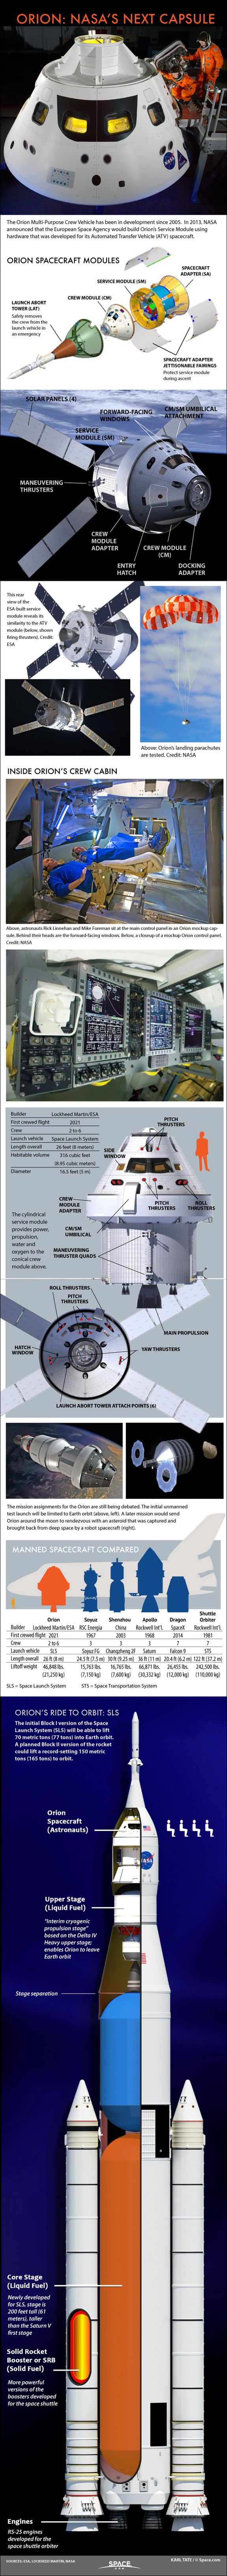 Orion Explained : NASA's Multi-Purpose Crew Vehicle (Infographic) - by : Karl Tate, SPACE.com Infographics Artist